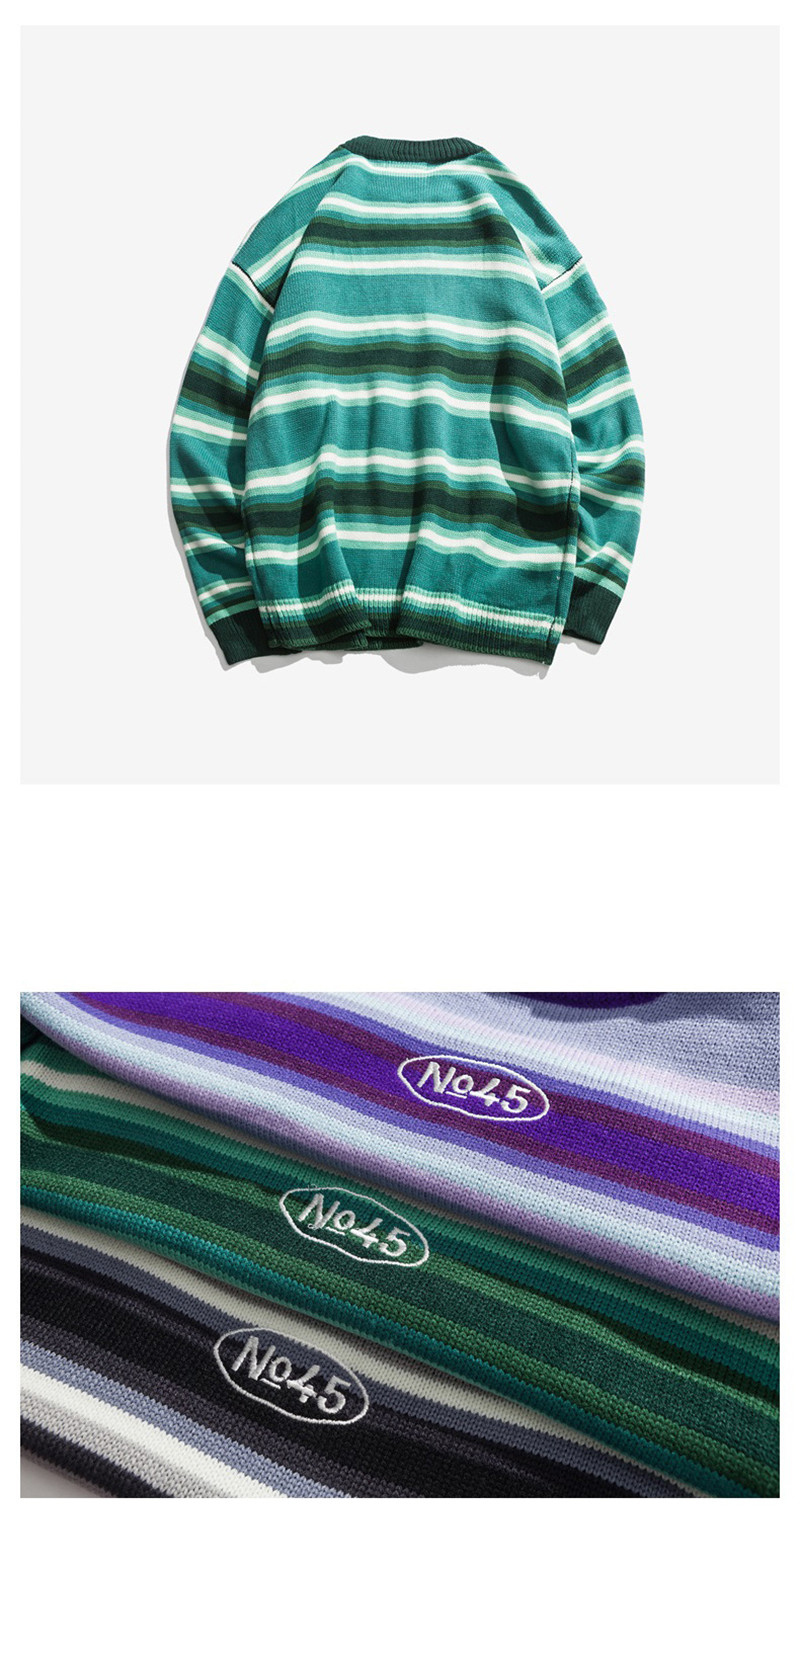 Knitted Japanese Harajuku Style Striped Sweater for Men Urban Boys Street Wear Crewneck Embroidery Pullover Jumper Oversized 10